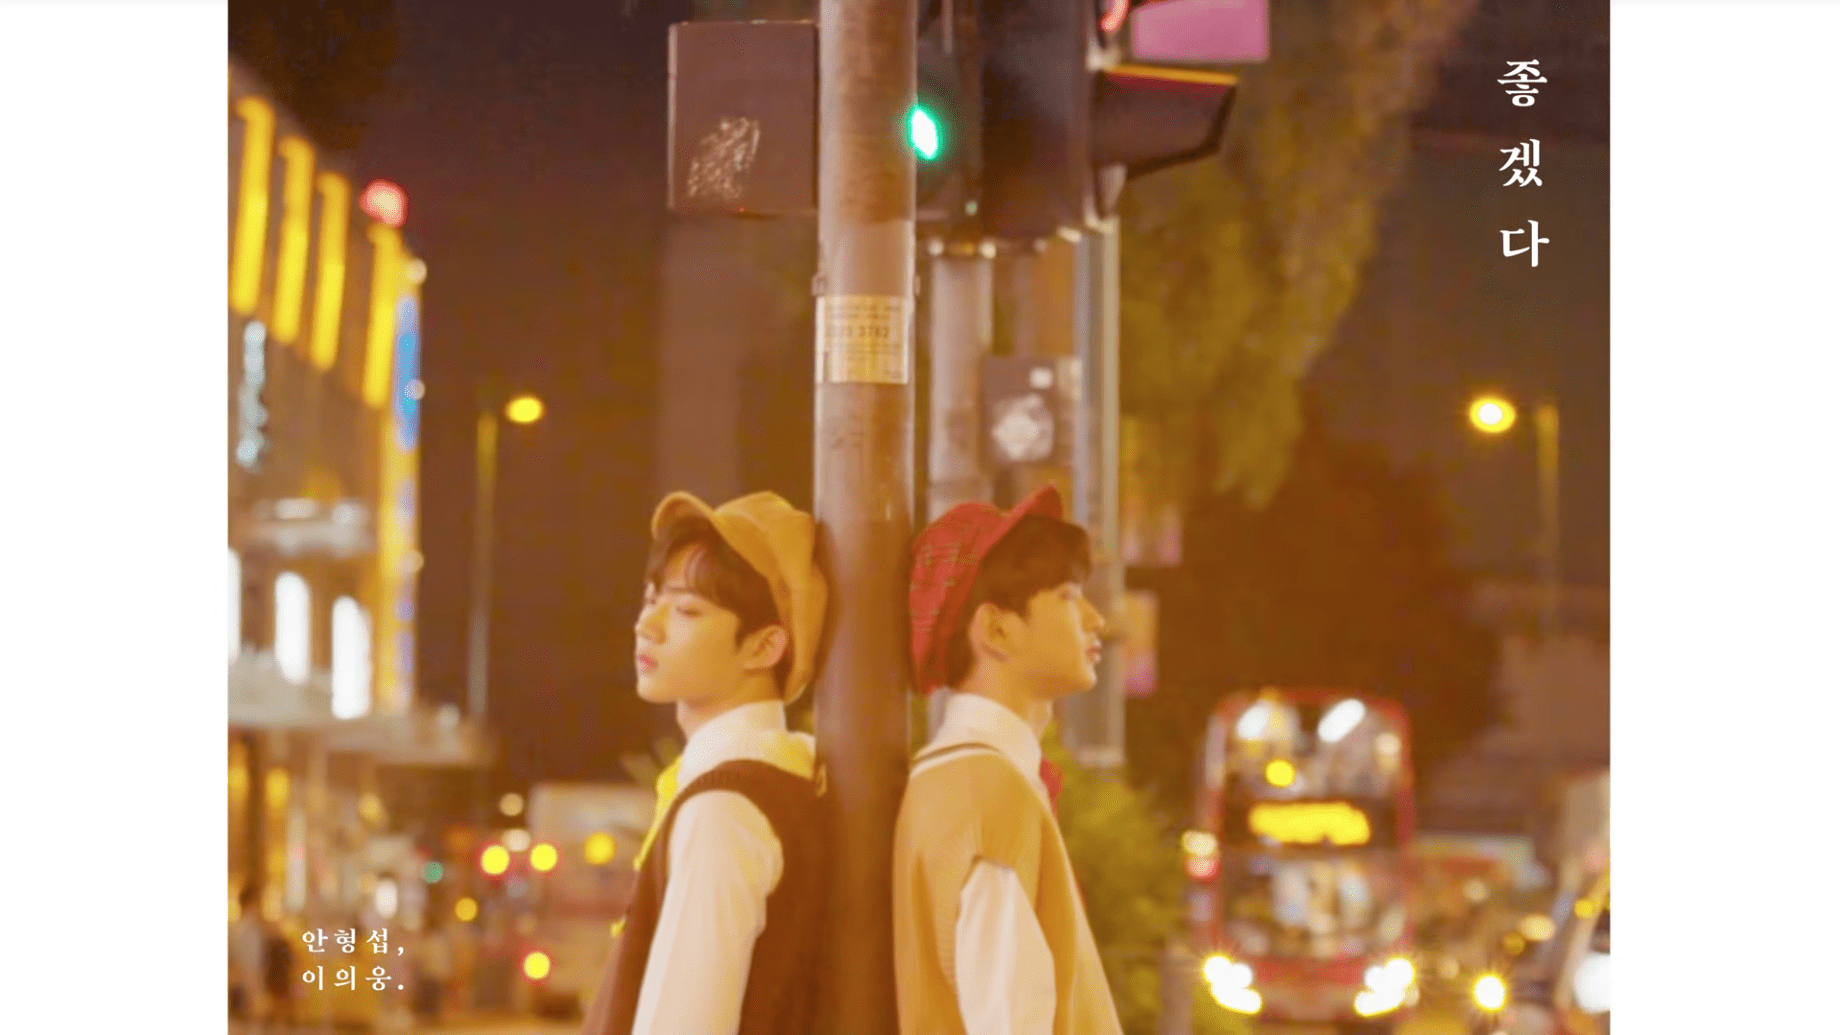 Watch: Ahn Hyeong Seop And Lee Eui Woong Share MV Teaser For Upcoming Single